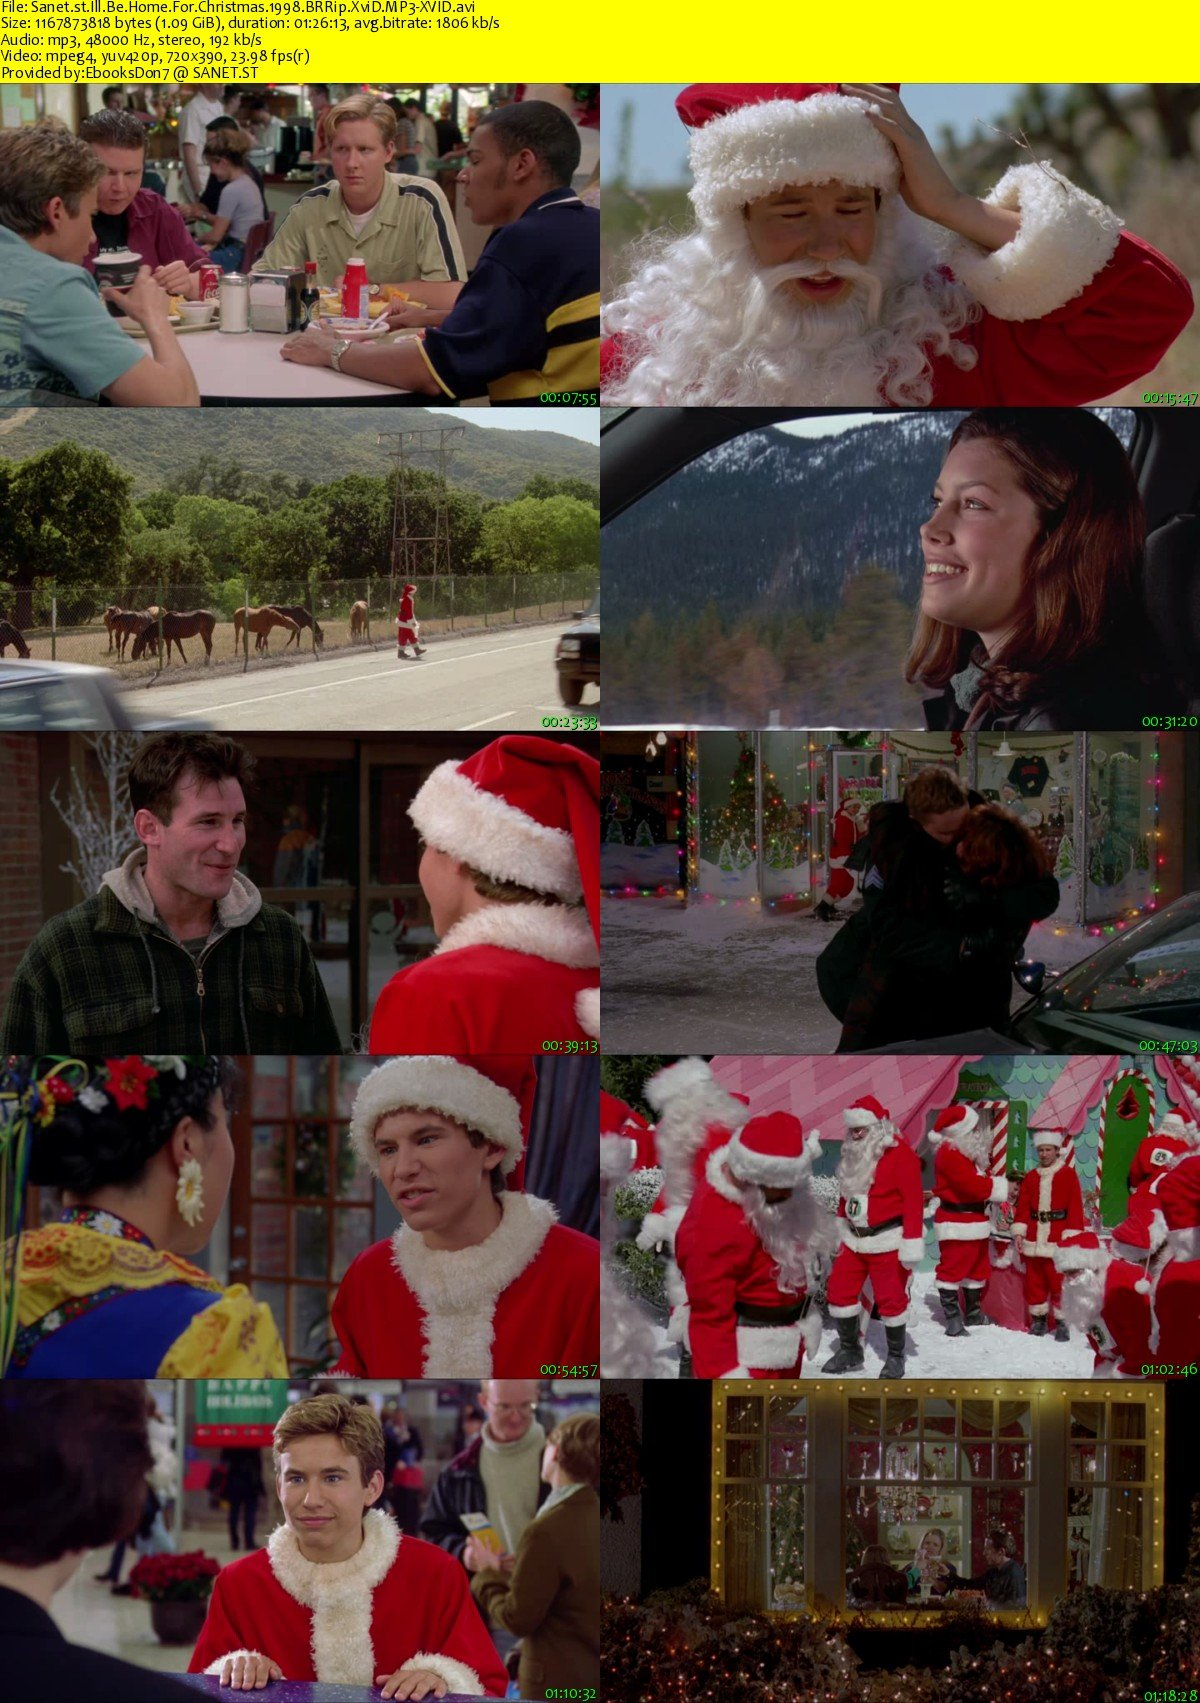 Ill Be Home For Christmas 1998.Download I Ll Be Home For Christmas 1998 Brrip Xvid Mp3 Xvid